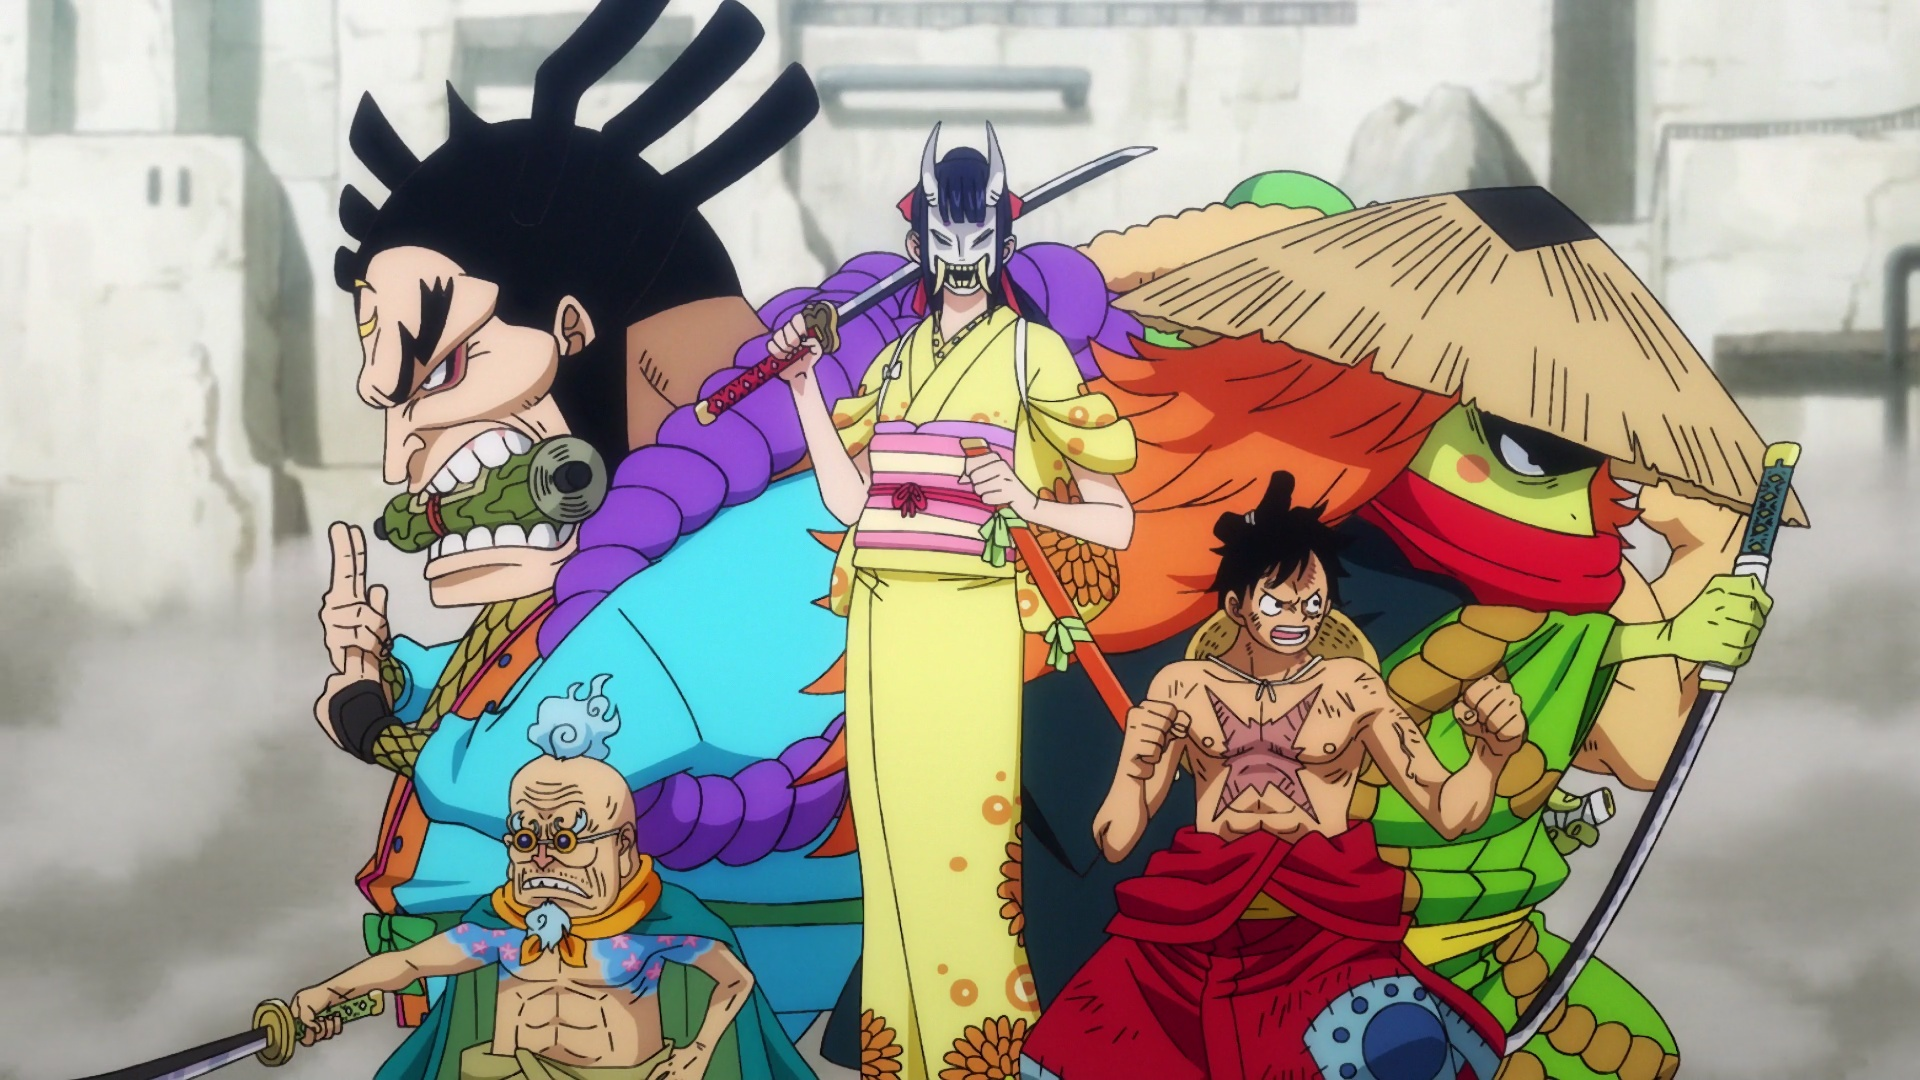 ONE PIECE 948 VOSTFR SD/HD/HD 10BITS/FHD News background